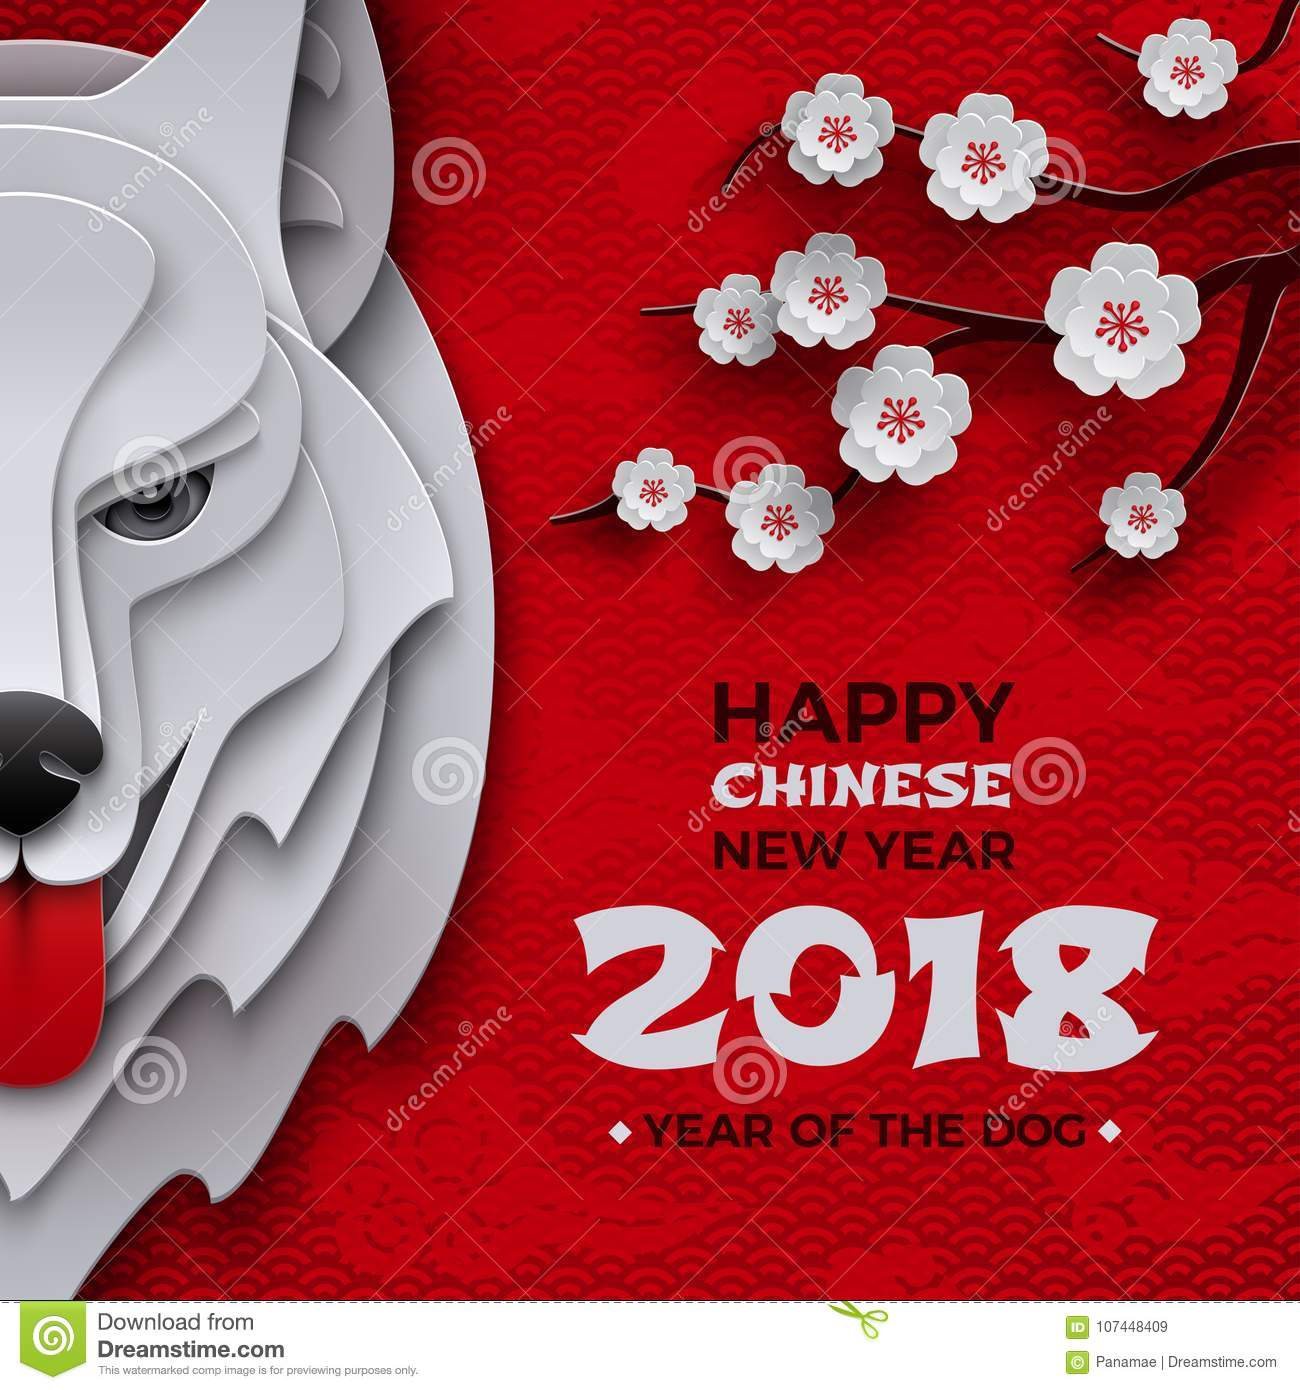 chinese new year banner symbol 2018 year of the dog zodiac sign